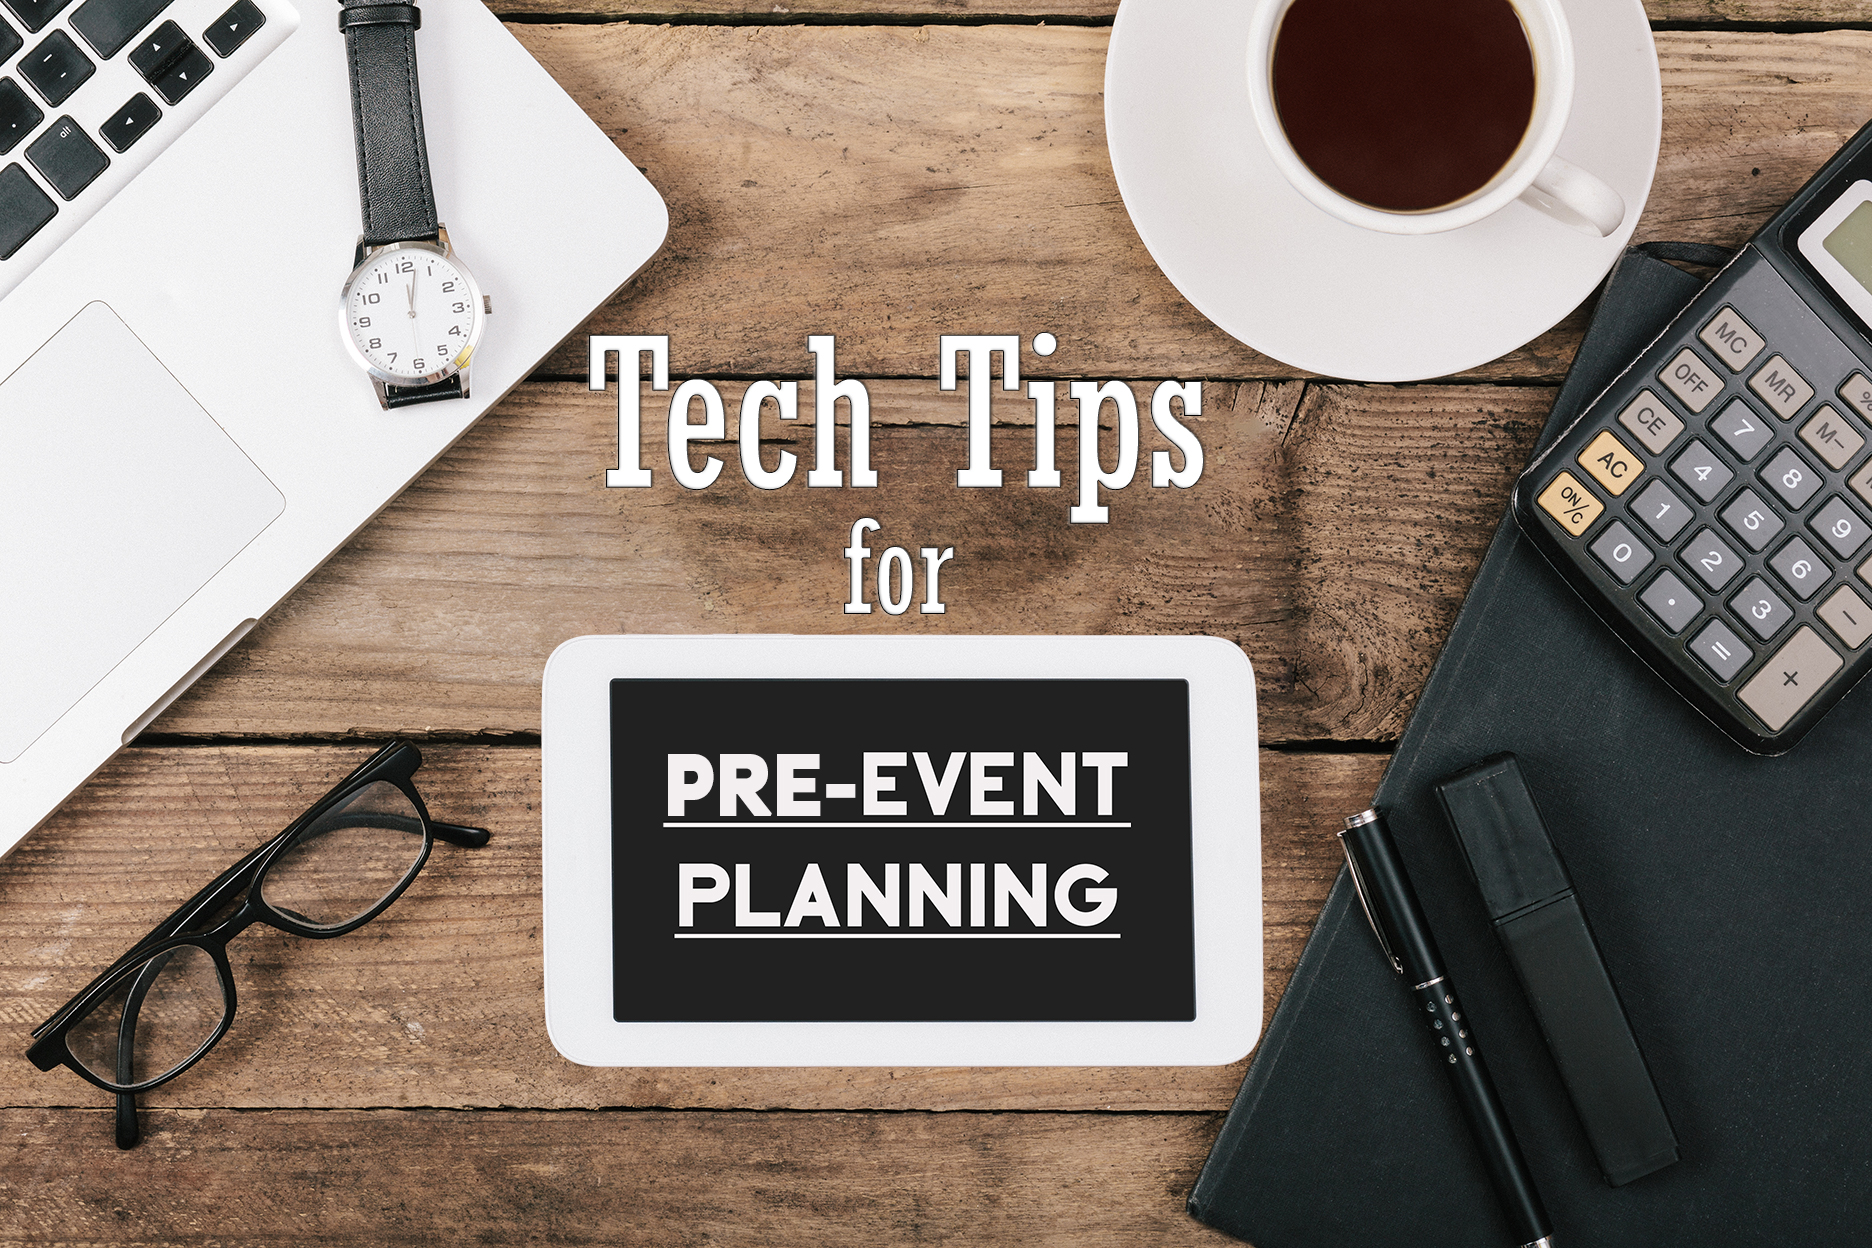 Tech Tips for Pre-event Planning on a desk